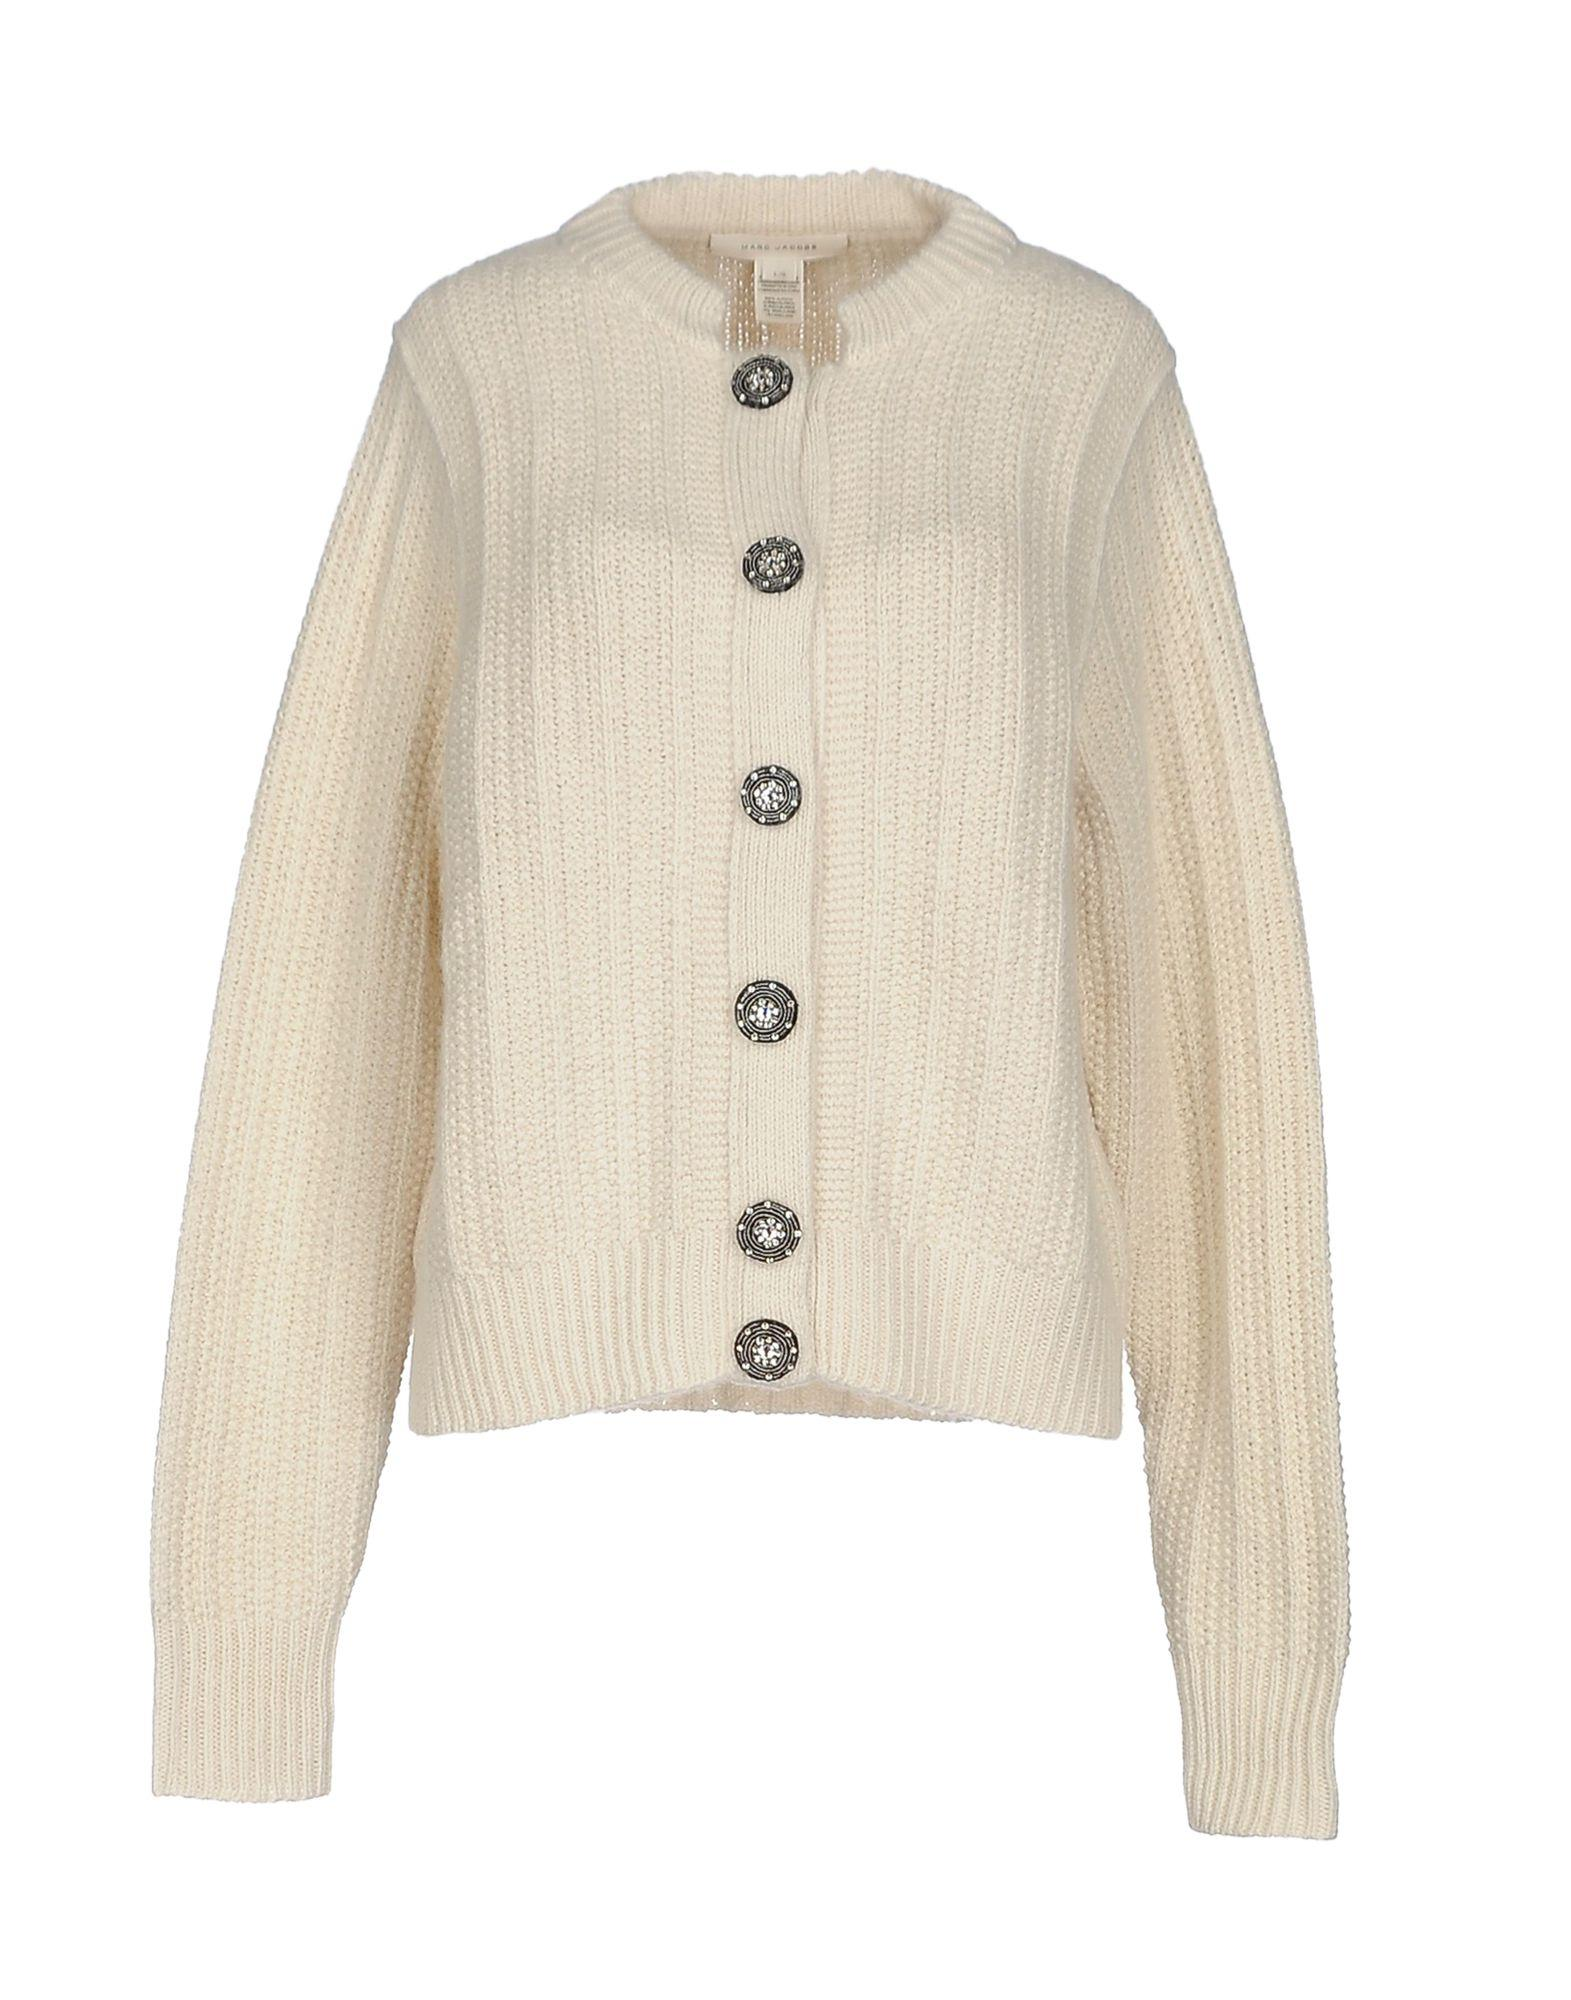 Marc Jacobs Cardigans In Ivory